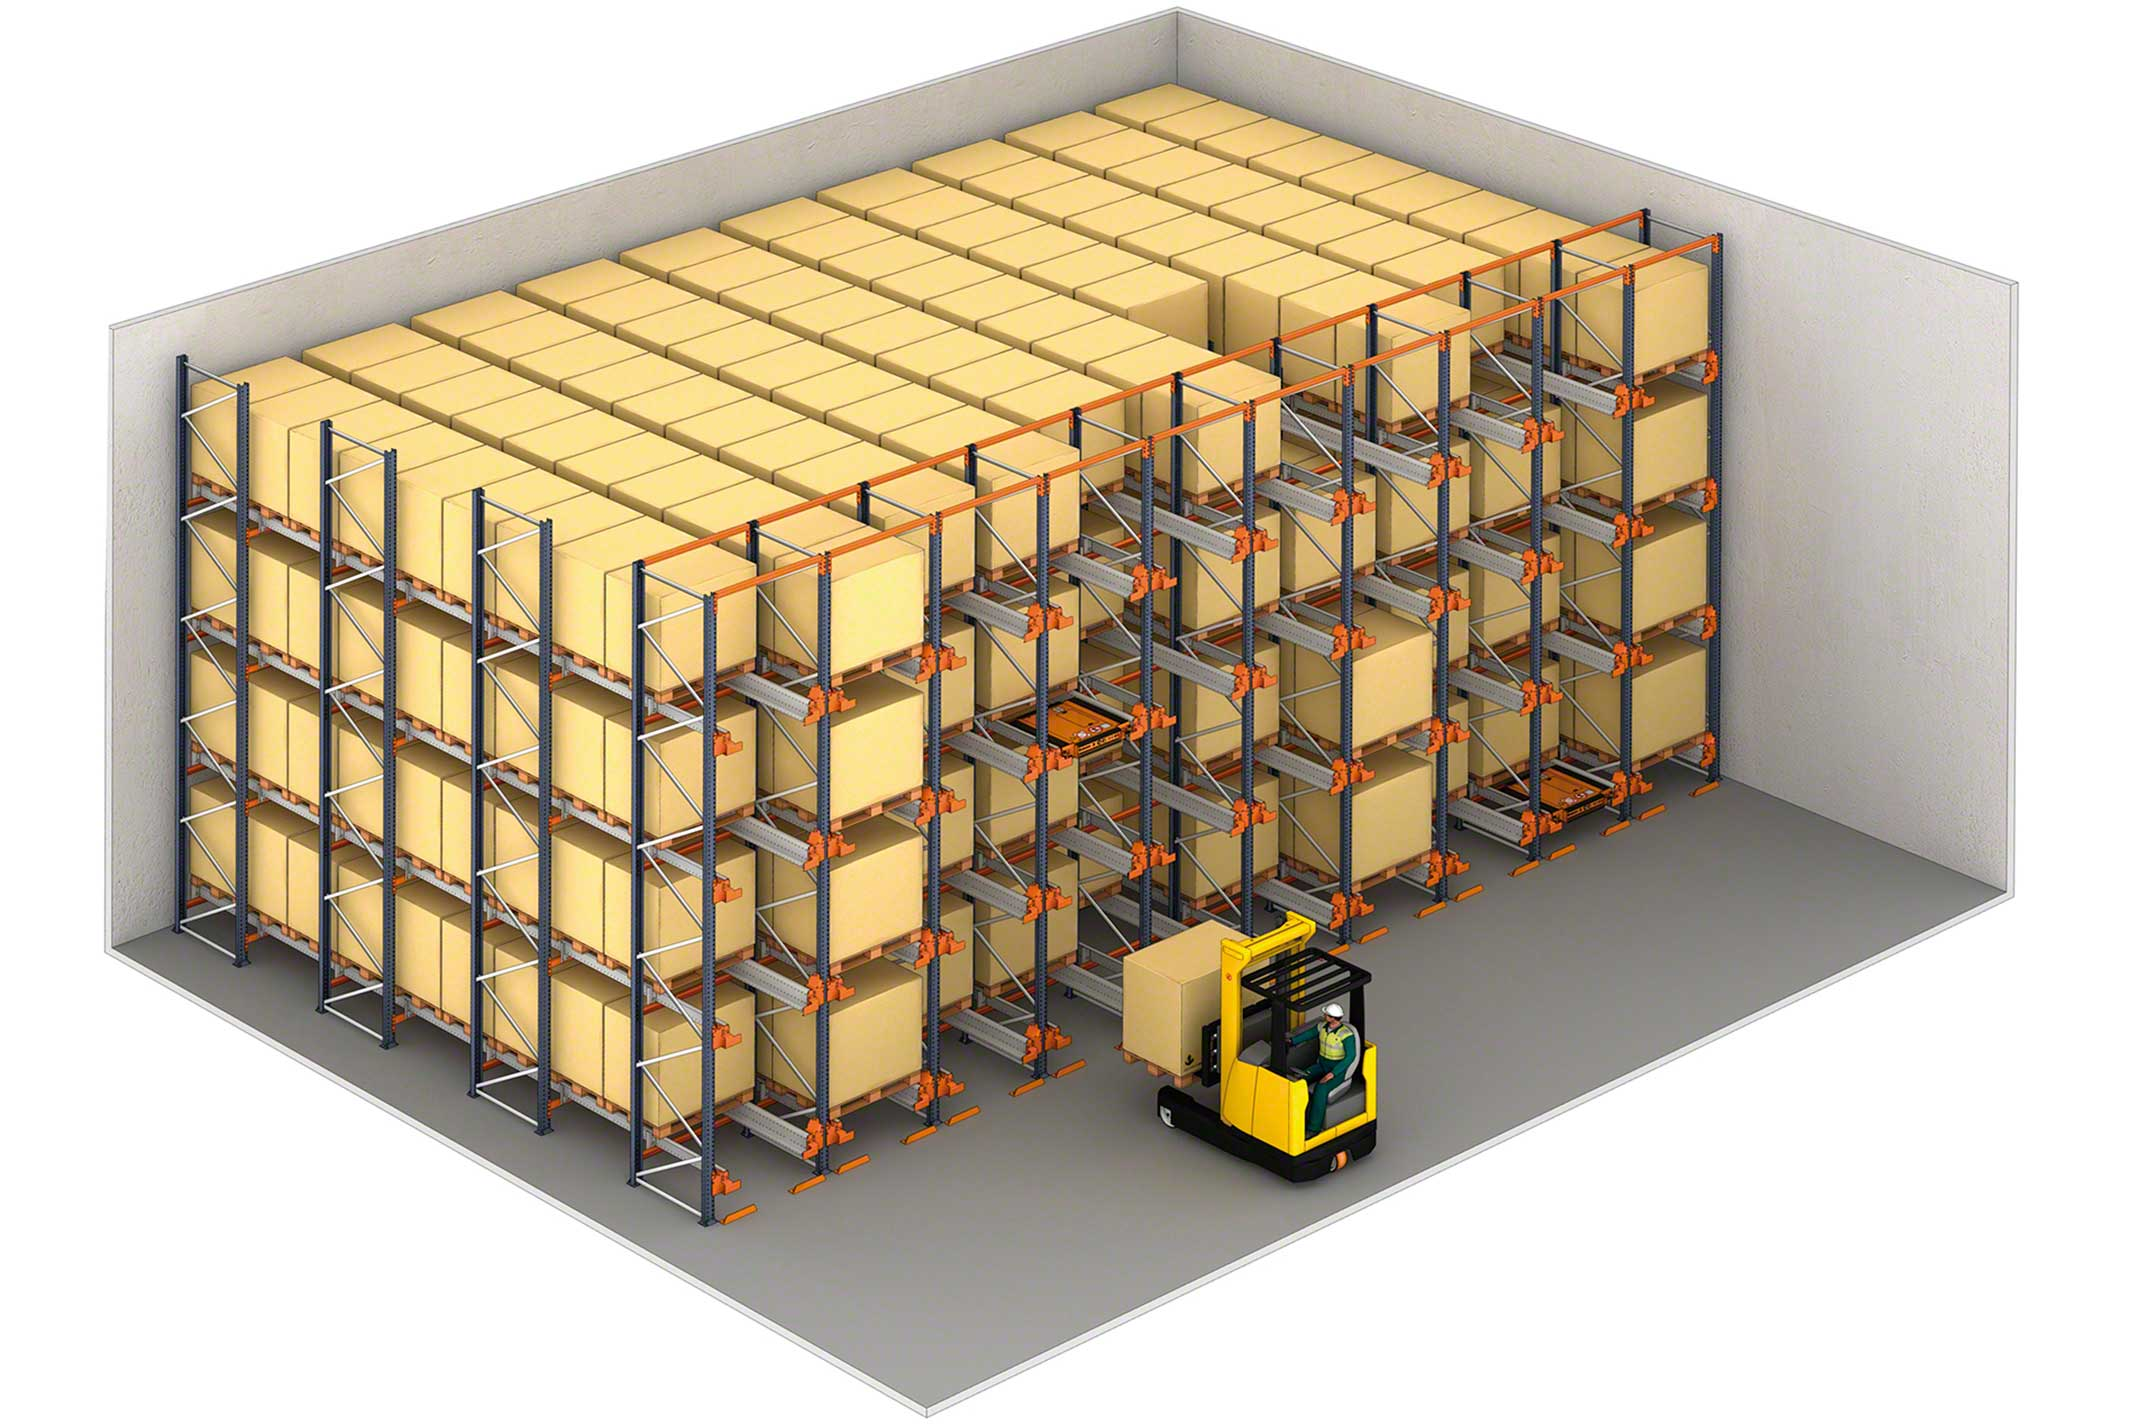 Example of a compact warehouse with Pallet Shuttle